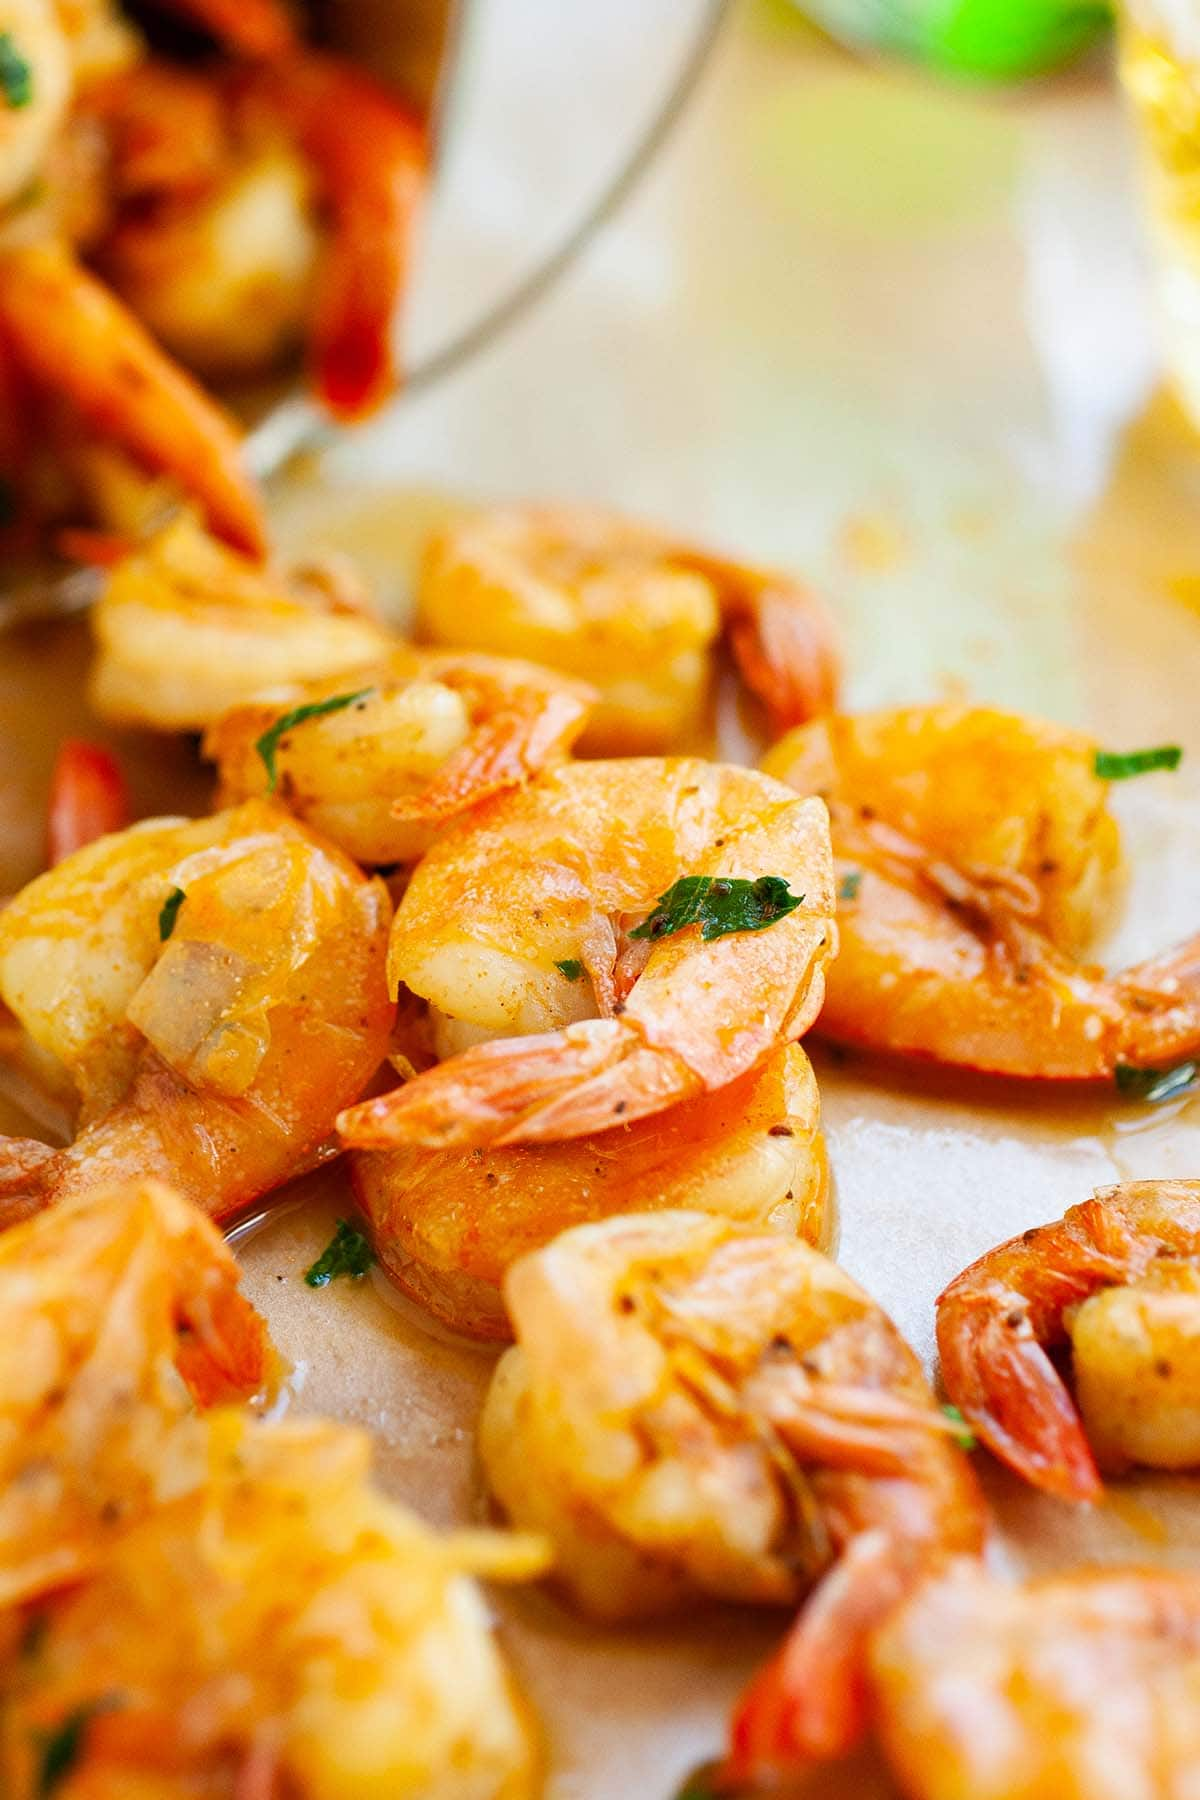 Easy and tasty peel and eat shrimps with homemade cocktail sauce.